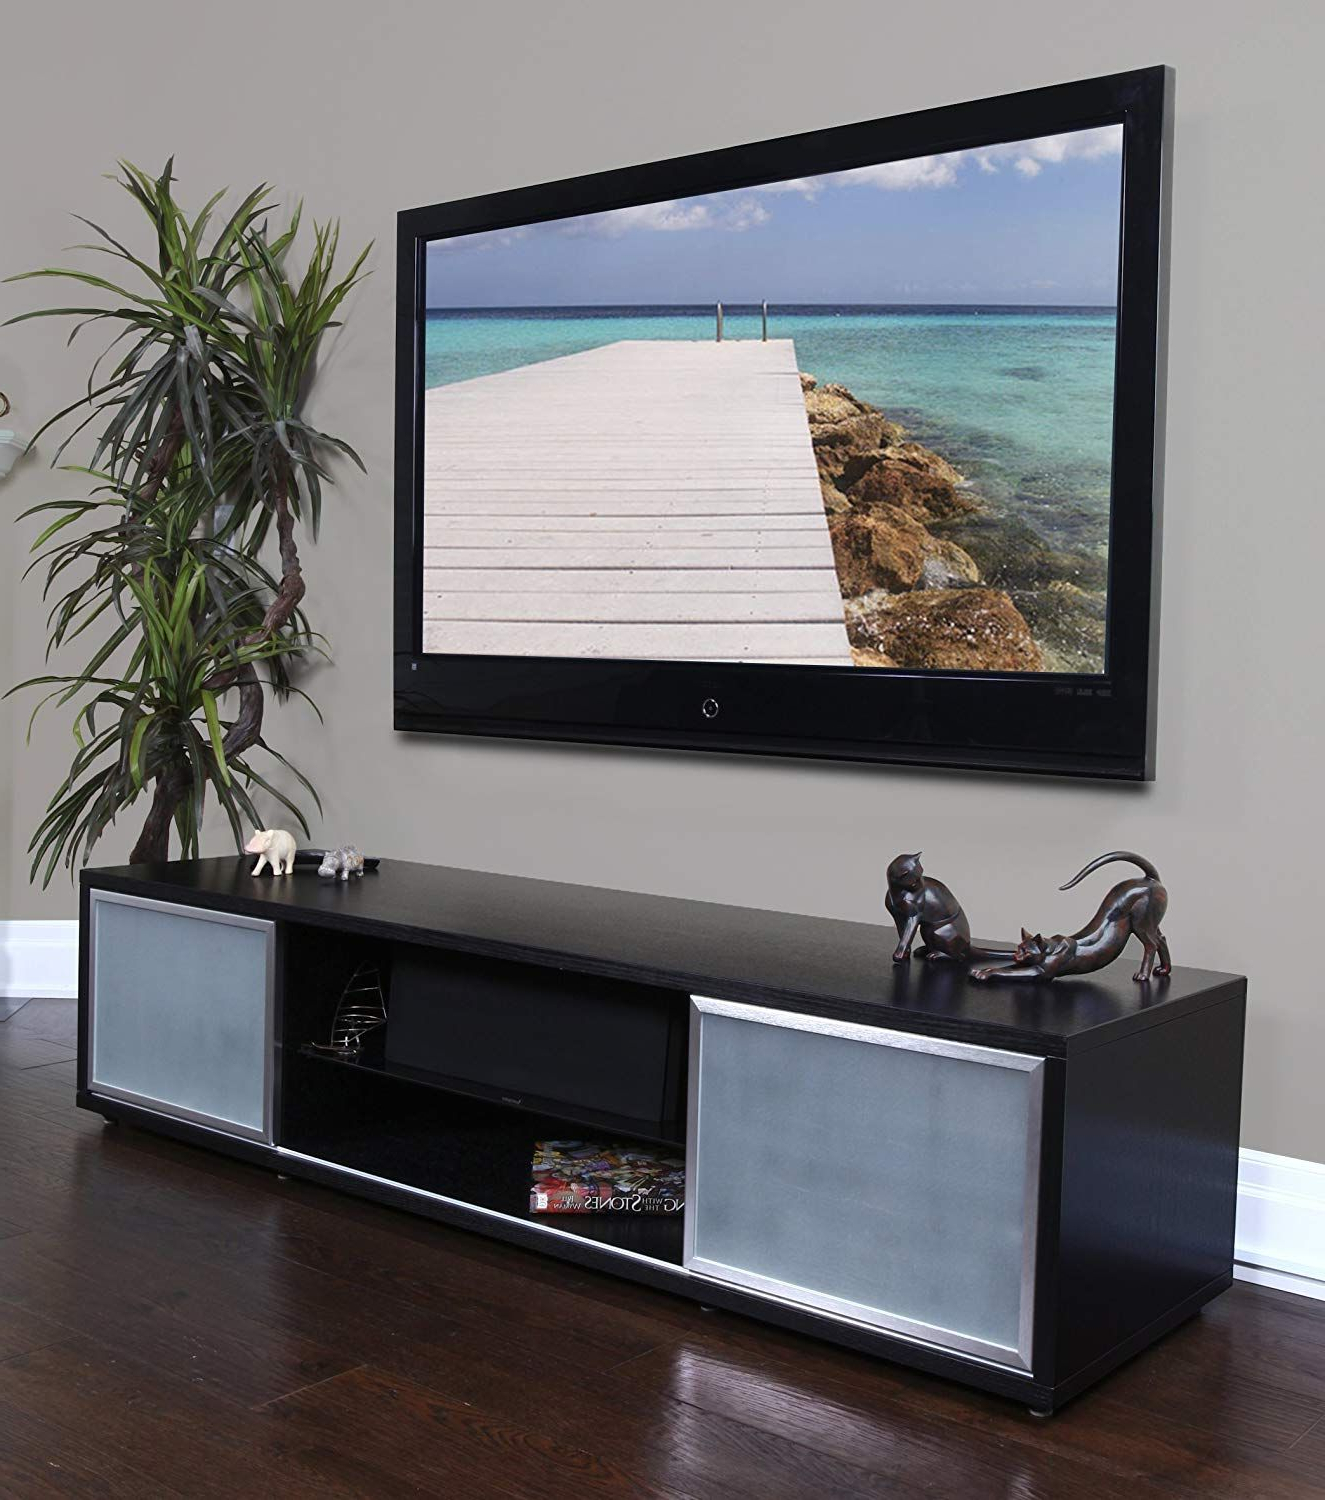 Plateau Sr V 75 Bb S Wood 75 Tv Stand, Black Oak Finish, Silver Inside Valencia 70 Inch Tv Stands (View 9 of 20)